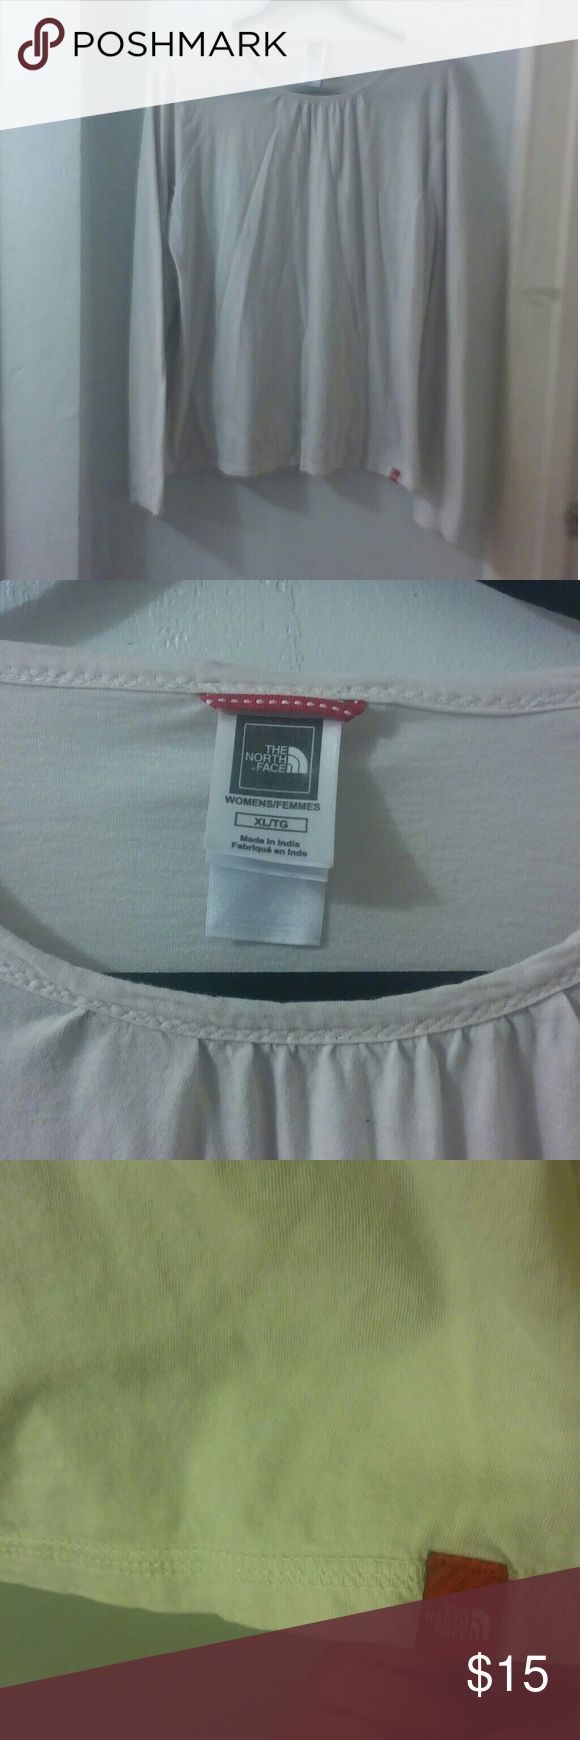 The North Face cream long sleeve top In used condition, great for working out. The North Face Tops Tees - Long Sleeve